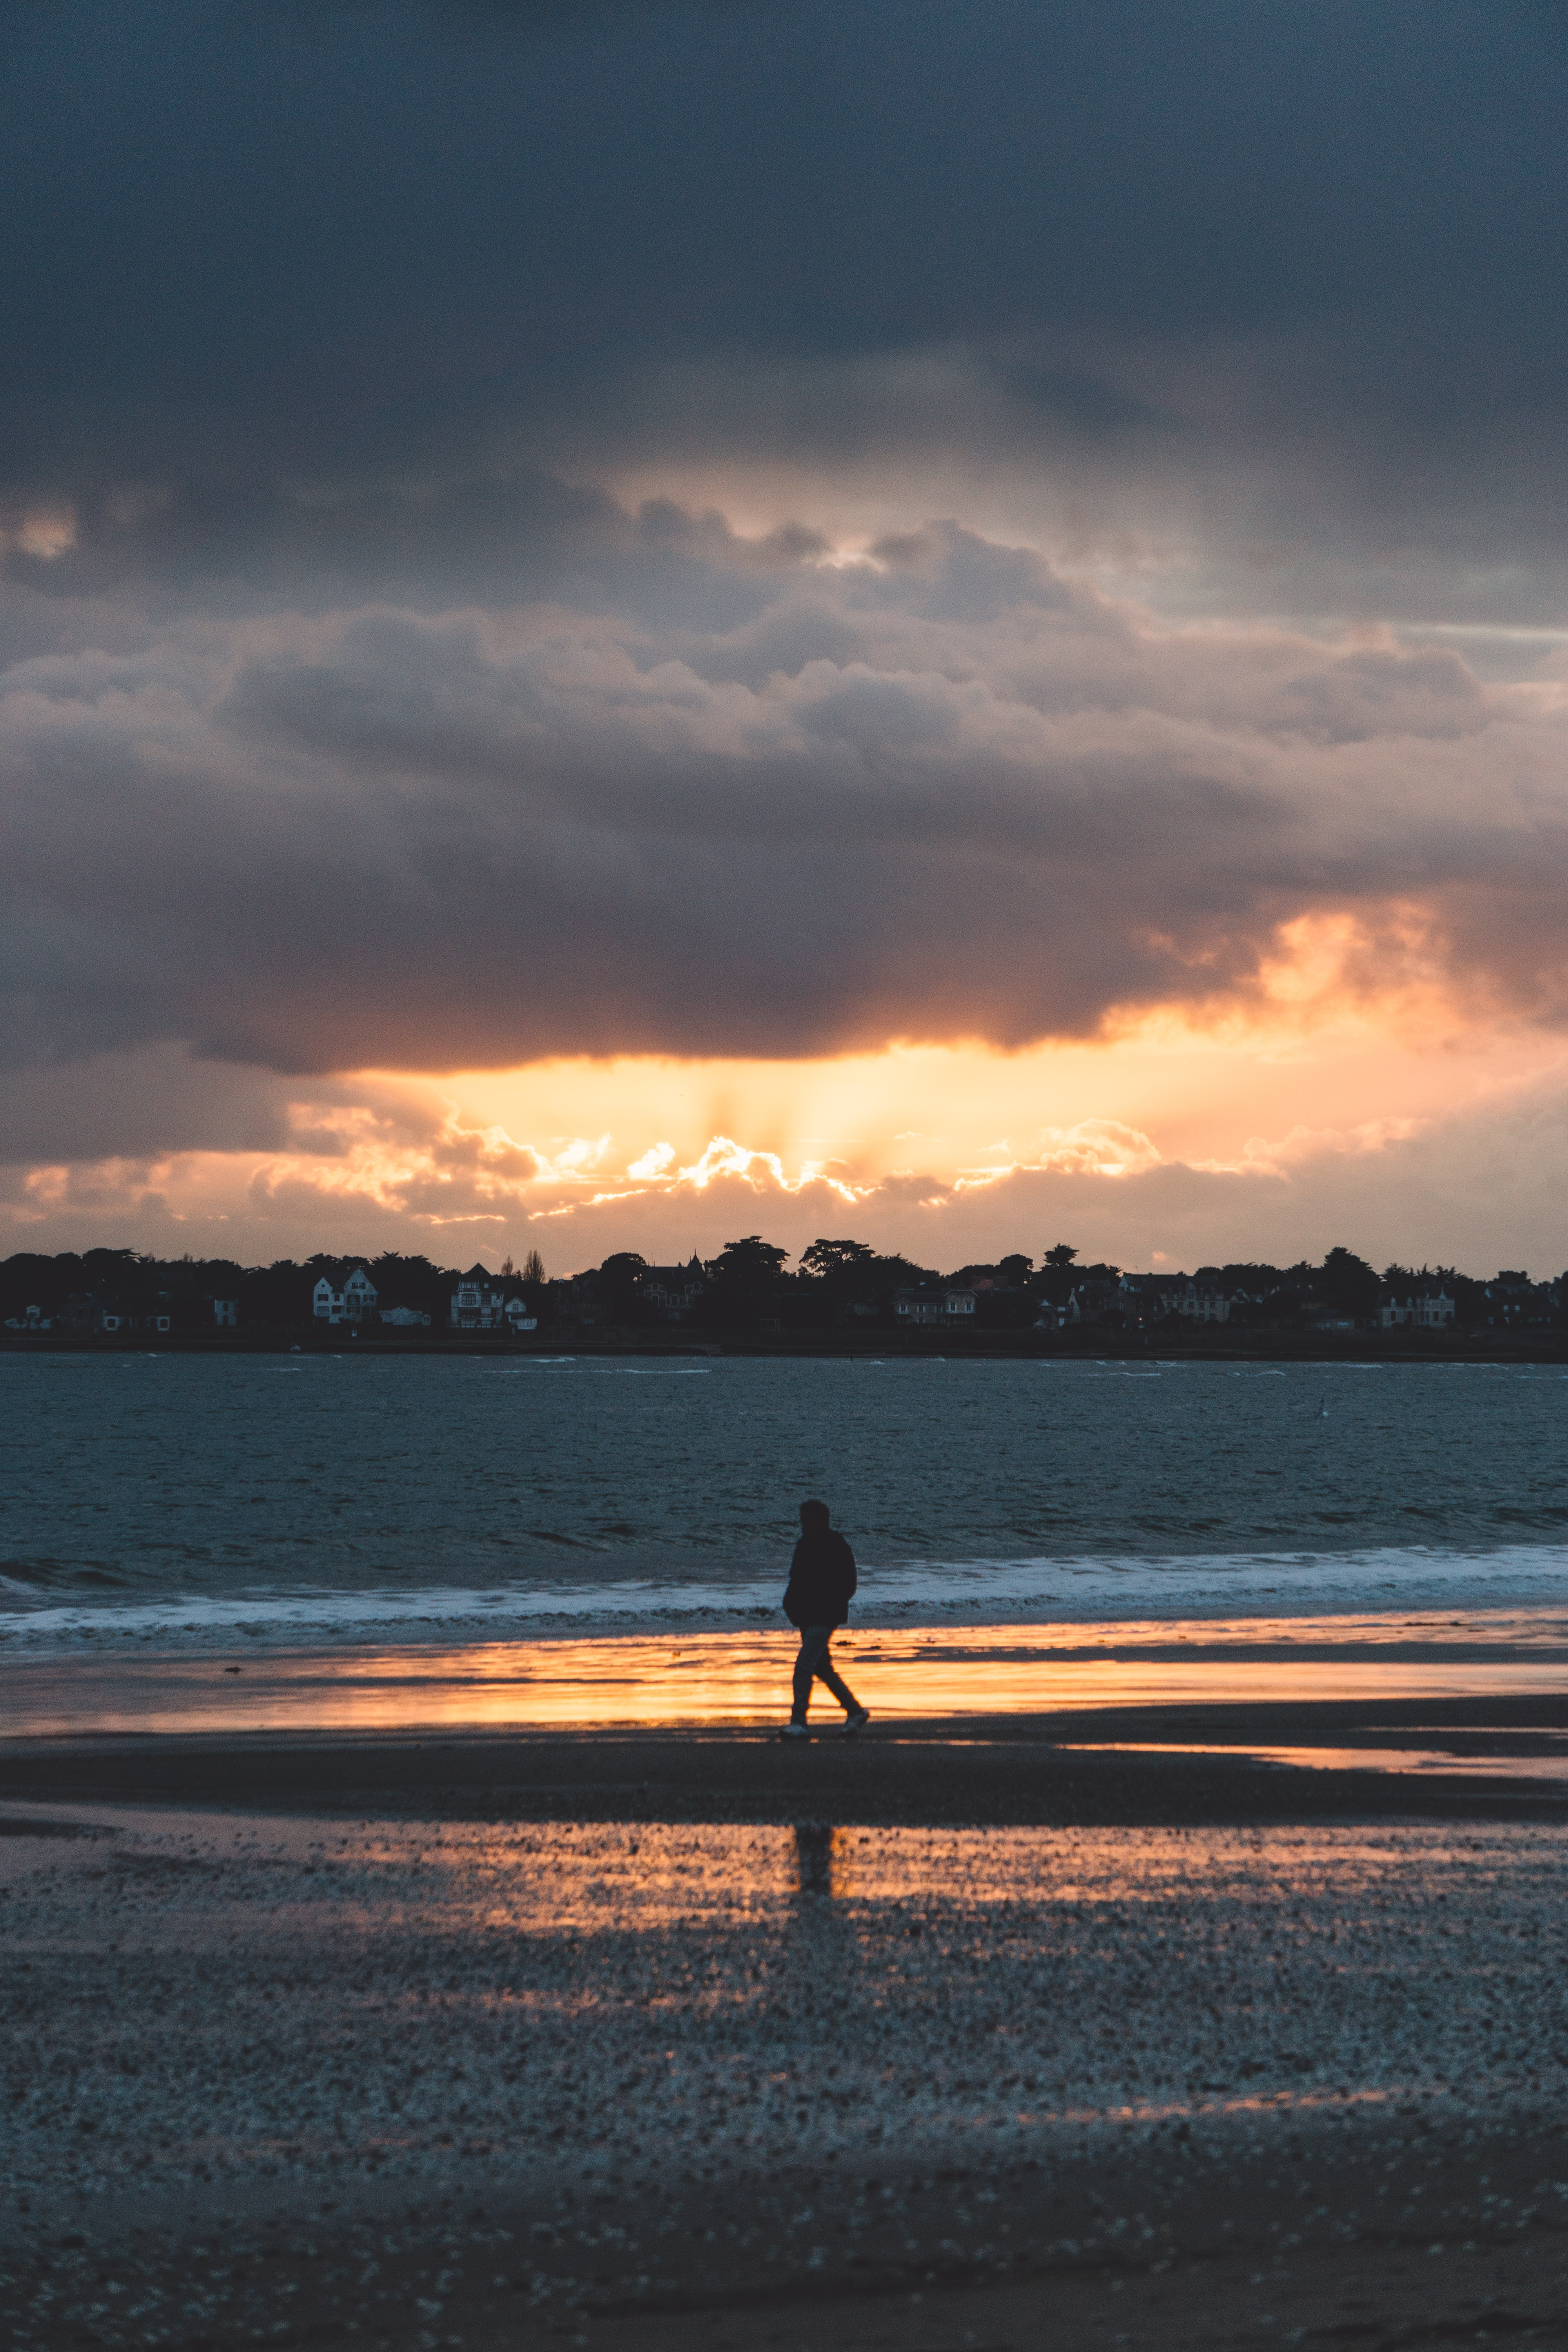 silhouette of person walking on the seashore